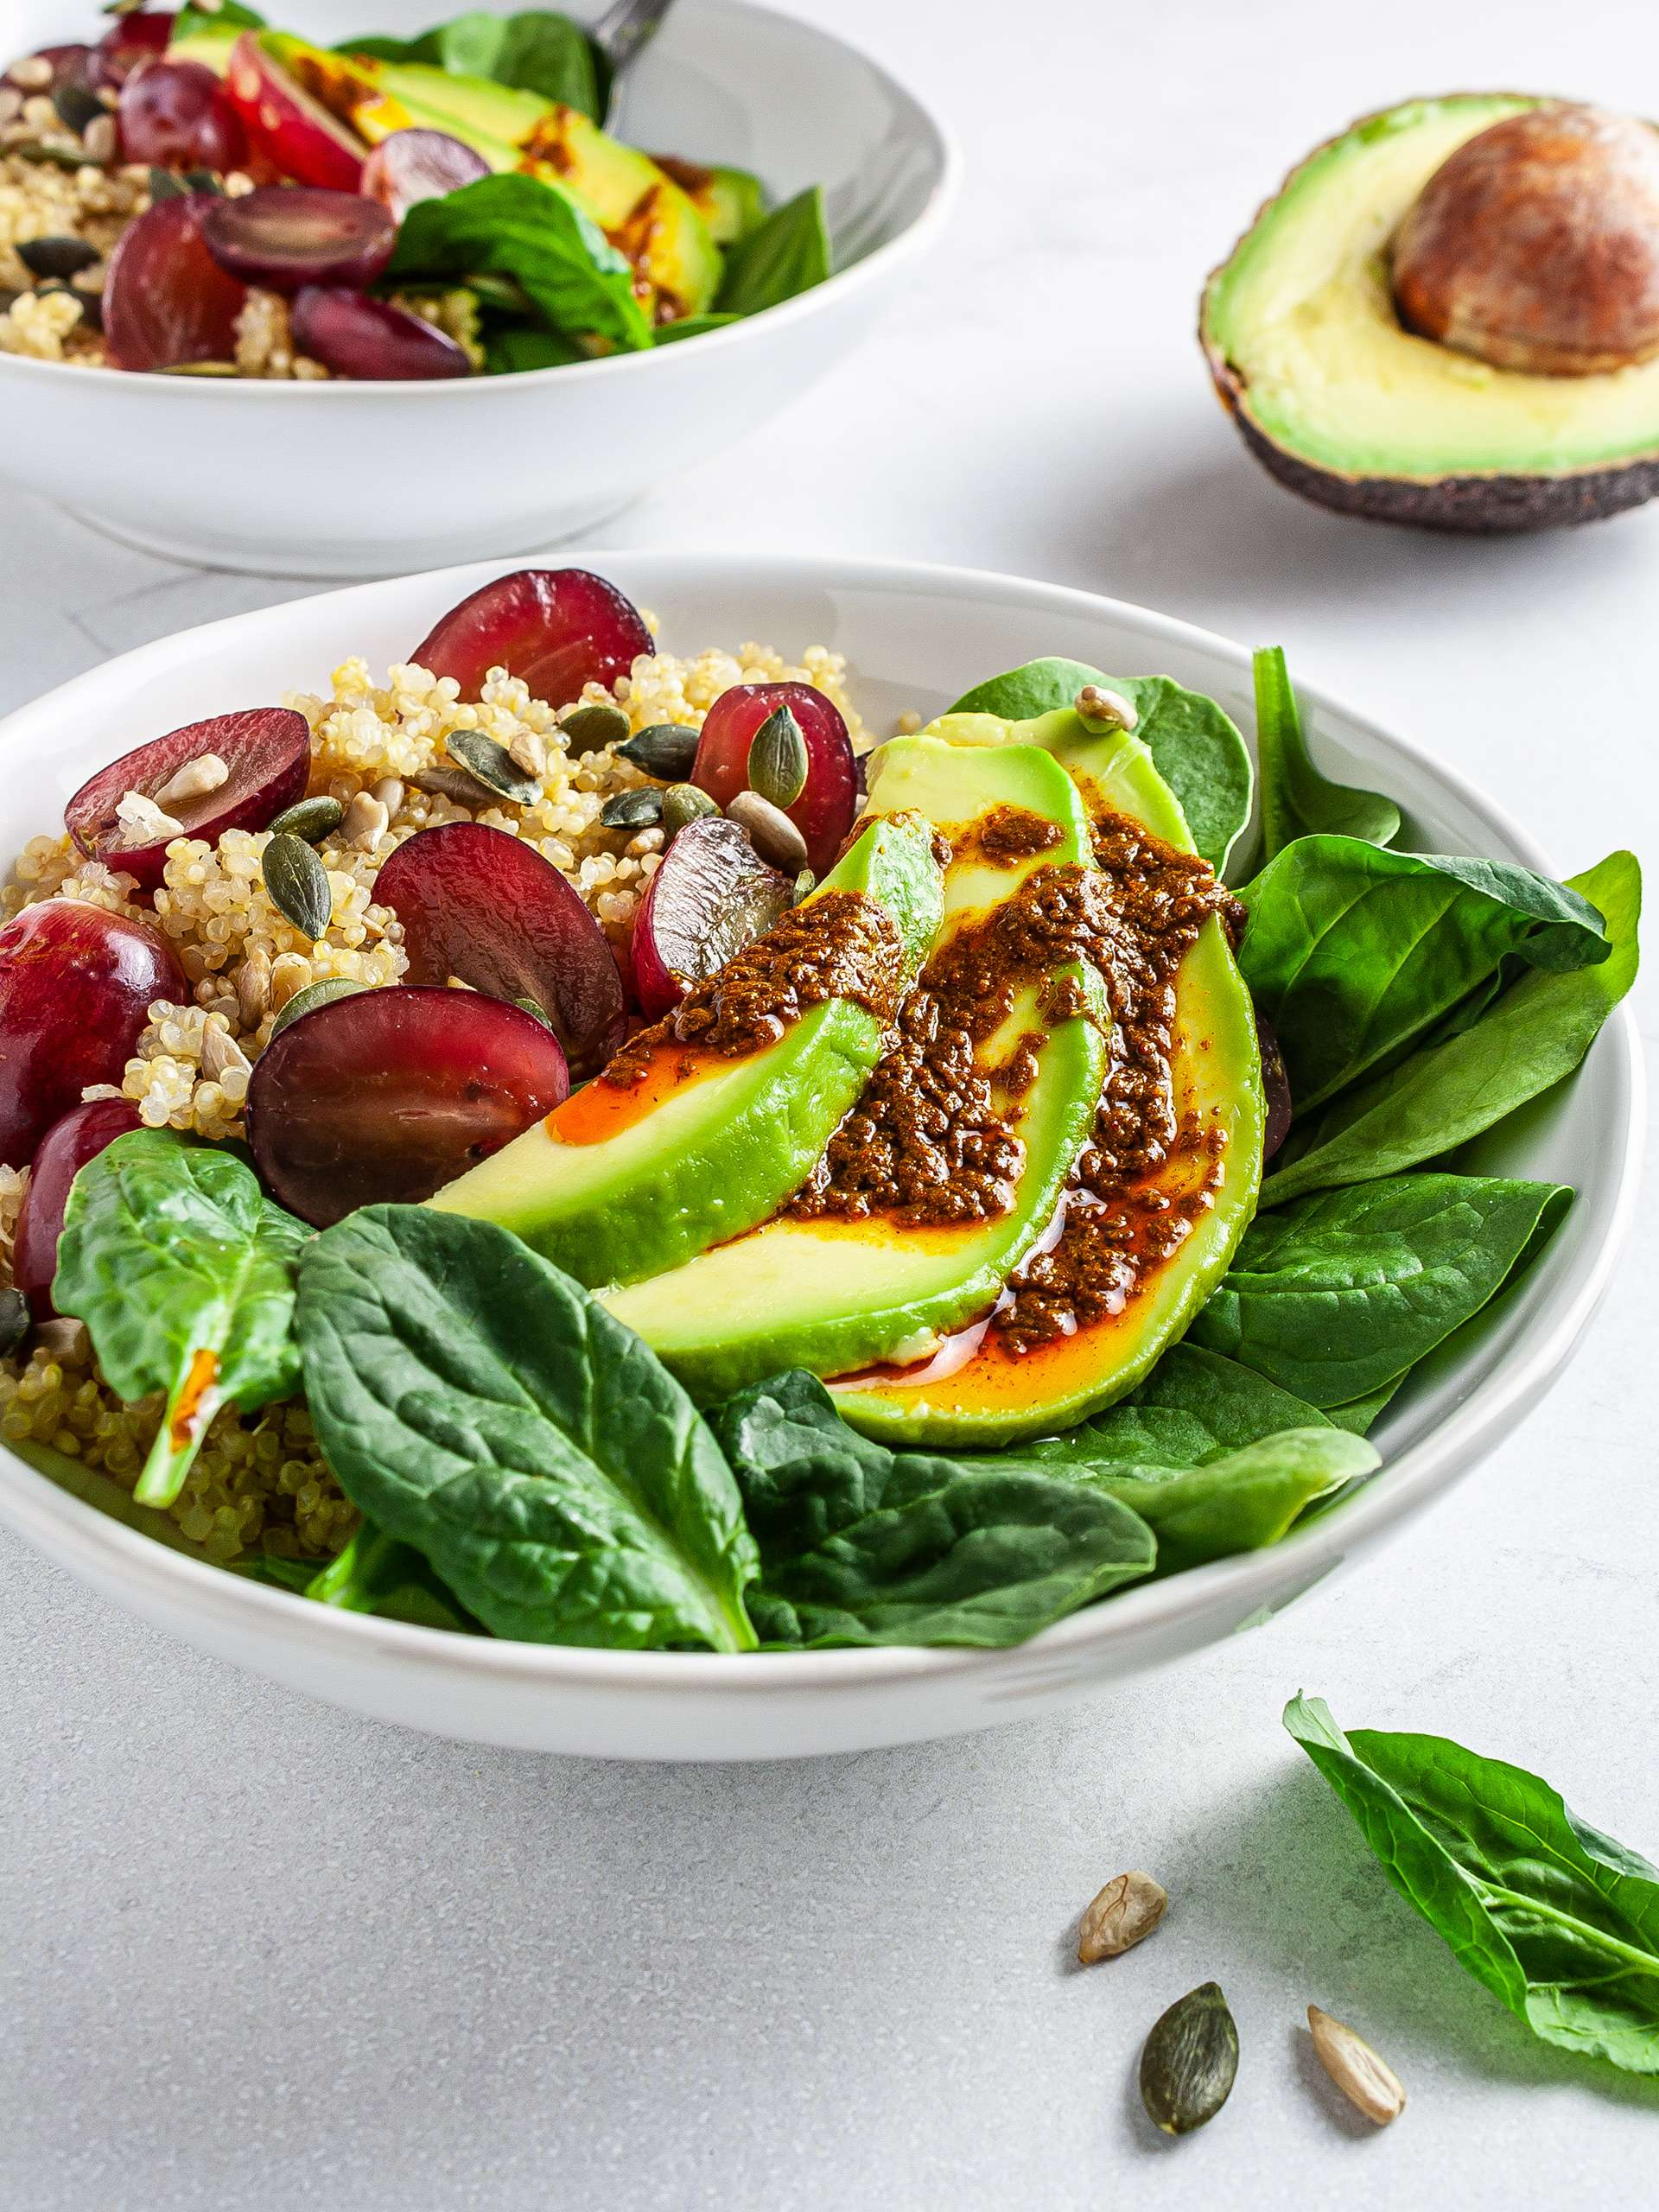 Quinoa Avocado Spinach Salad with Grapes Thumbnail